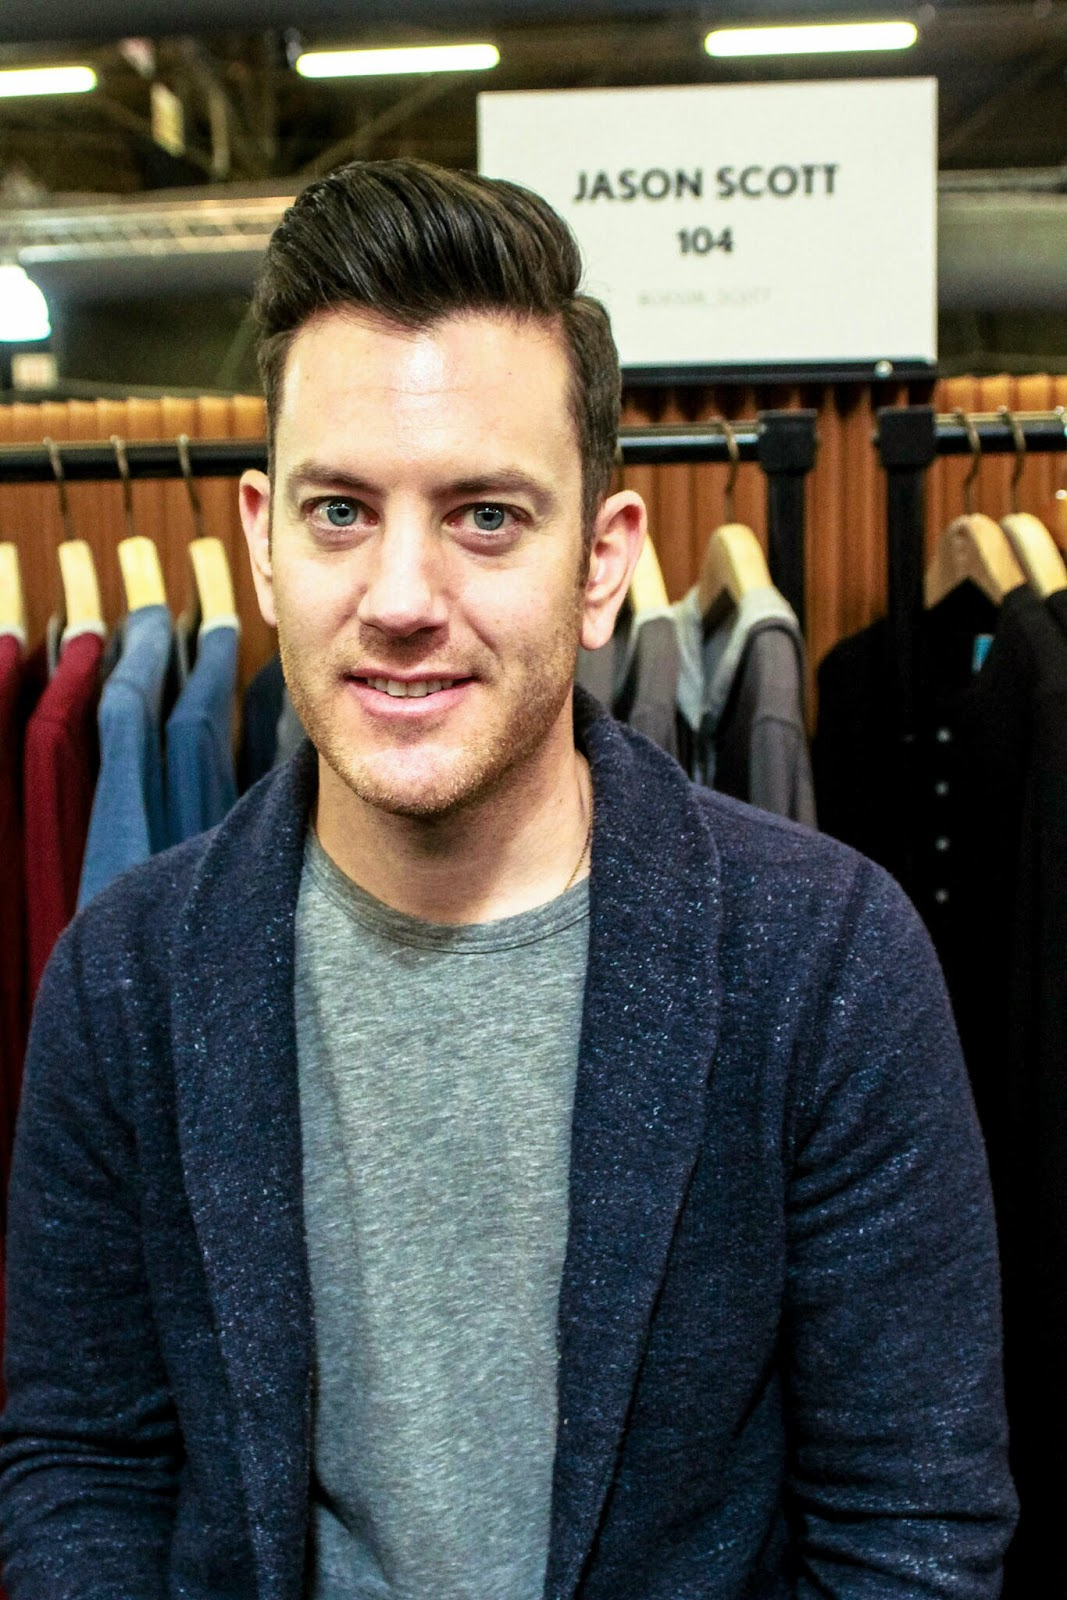 Scott Designer Clothes | Interview Jason Mandler Wearing A T Shirt And Jeans You Don T